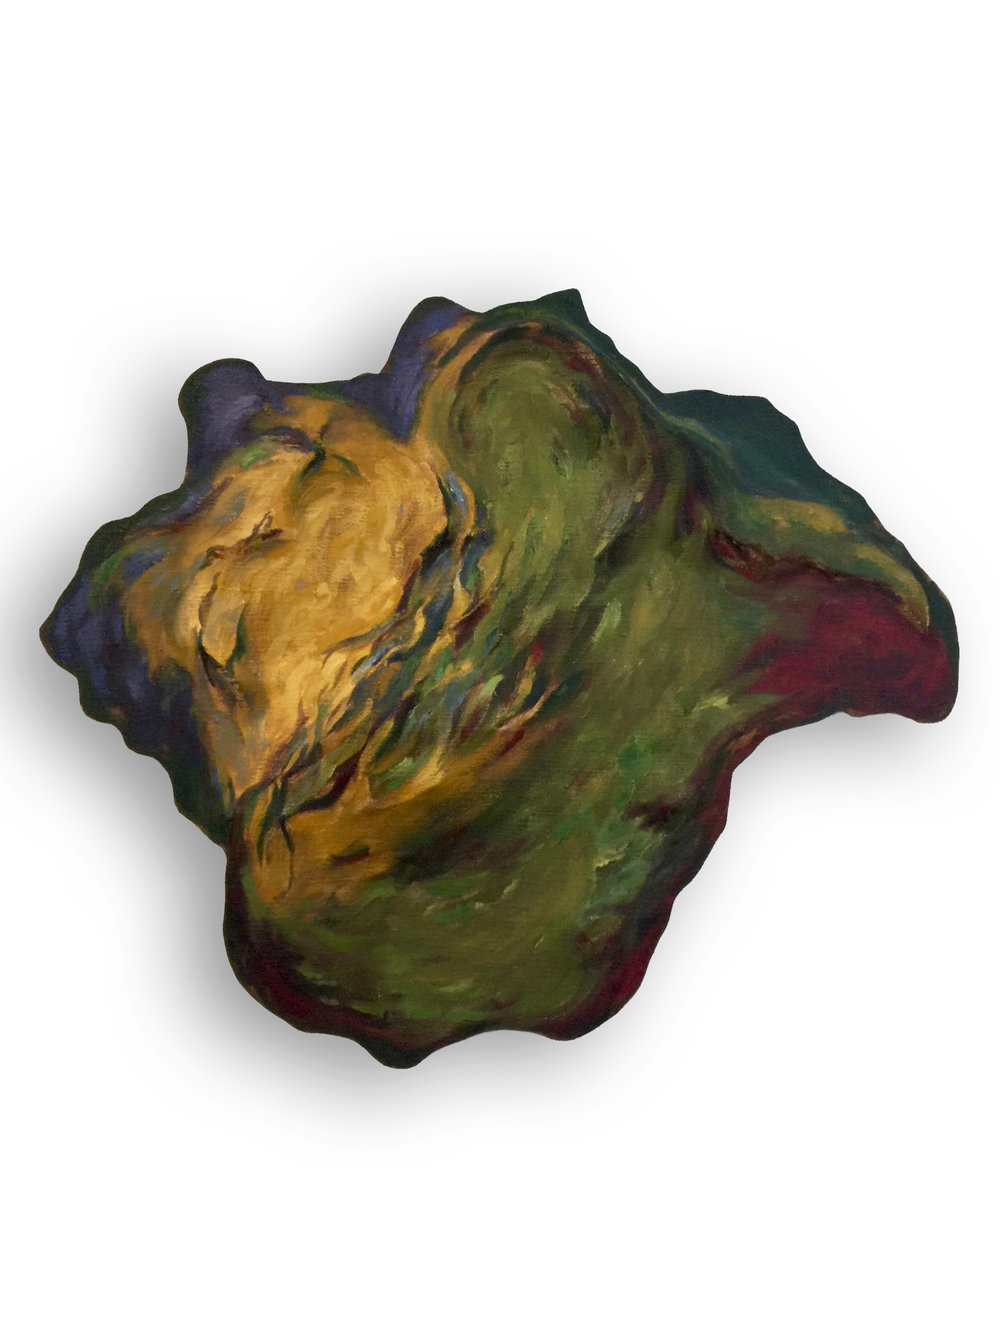 Untitled (Green and Purple Shell)